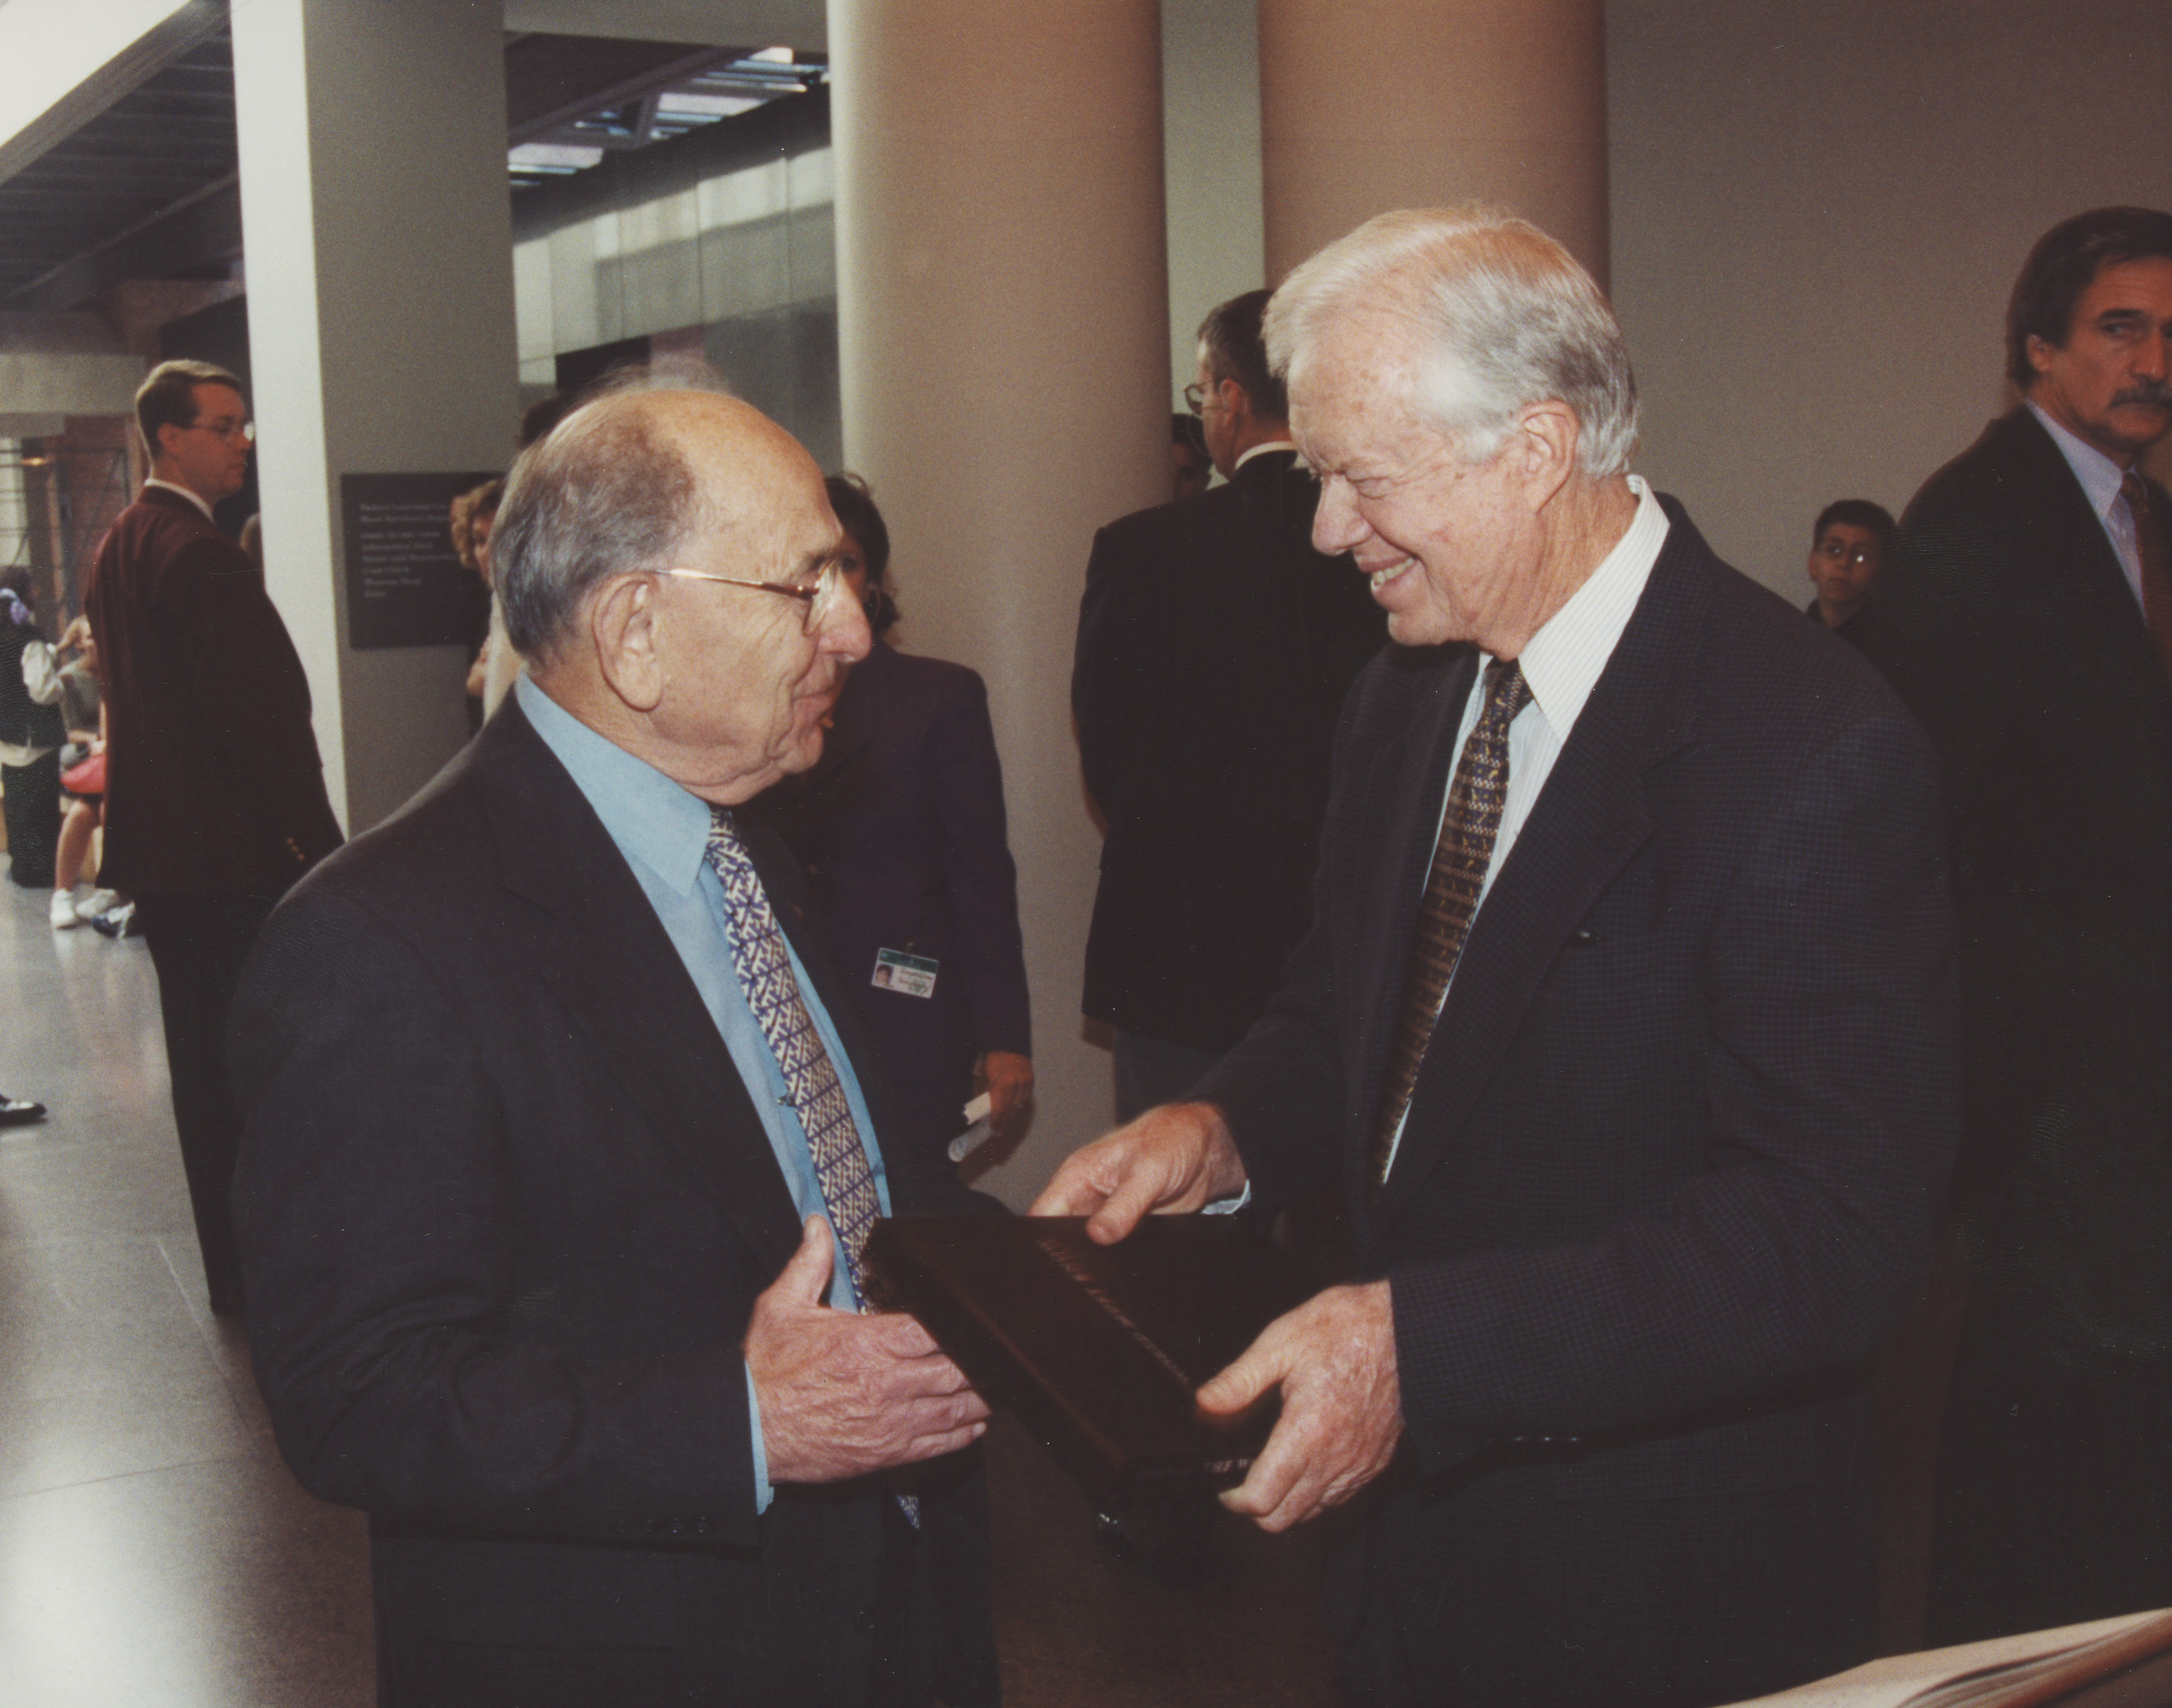 Miles Lerman and Jimmy Carter exchange gifts during Jimmy Carter's visit to the United States Holocaust Memorial Museum.